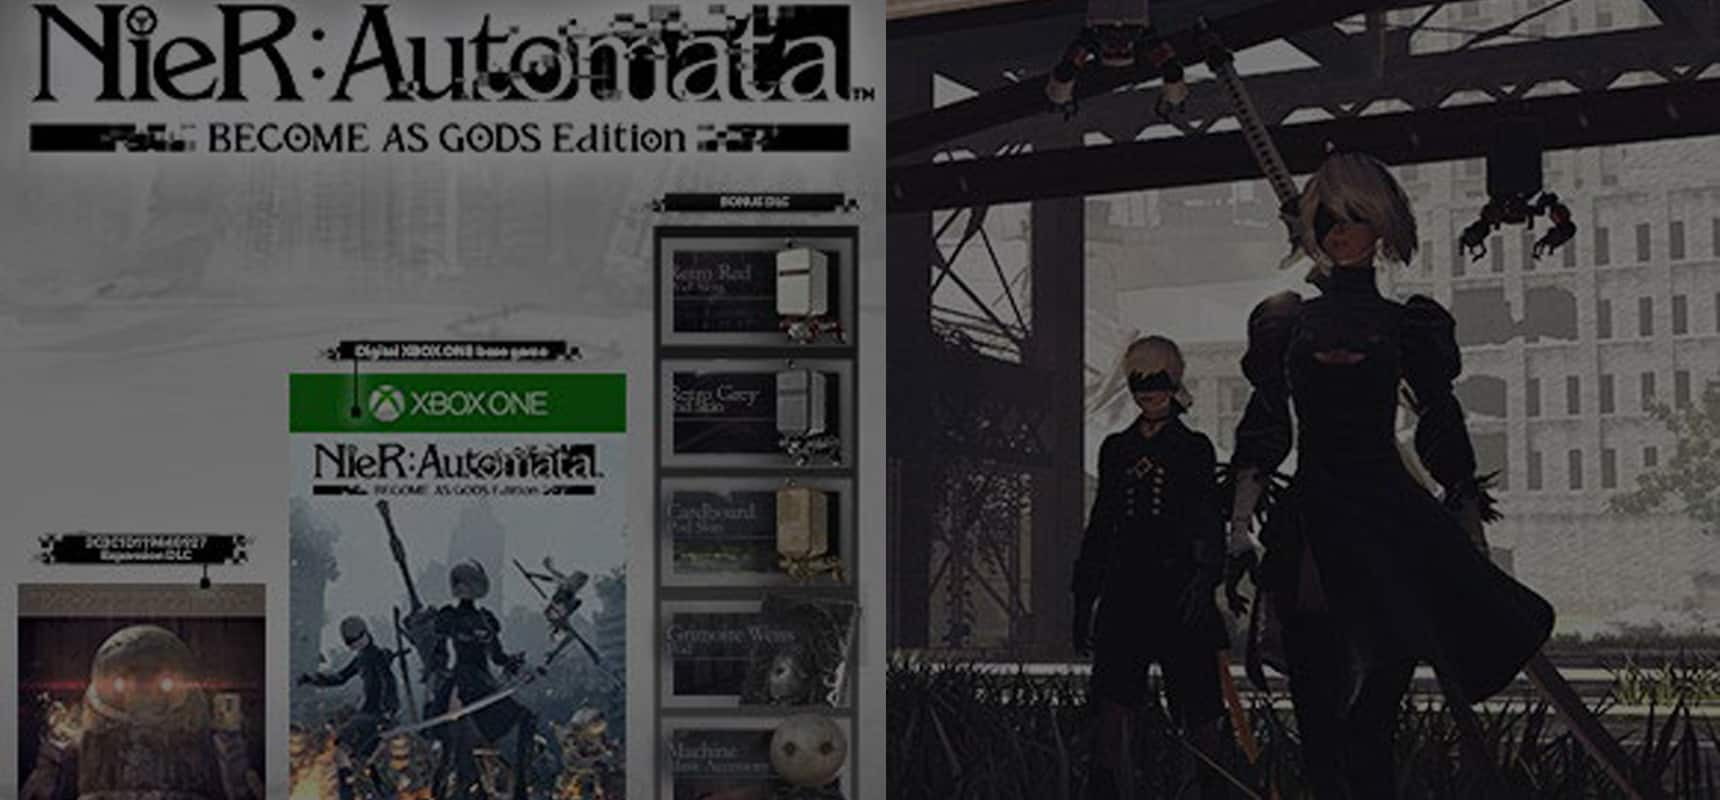 Nier Automata Review: is Nier Automata Game worth Buying